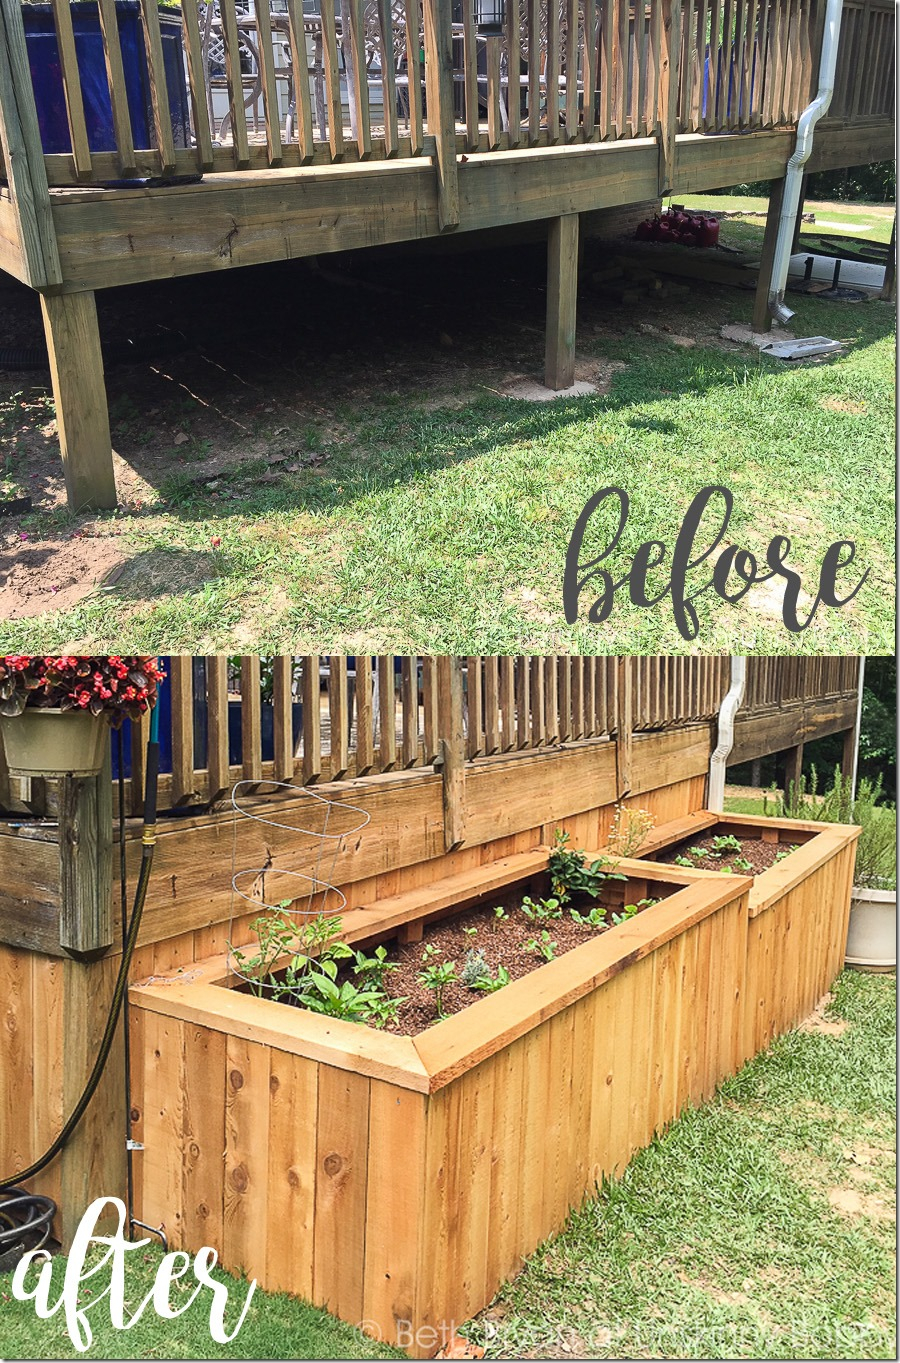 A Backyard Makeover With Raised Garden Beds Unskinny Boppy for 13 Clever Initiatives of How to Make Backyard Raised Garden Ideas